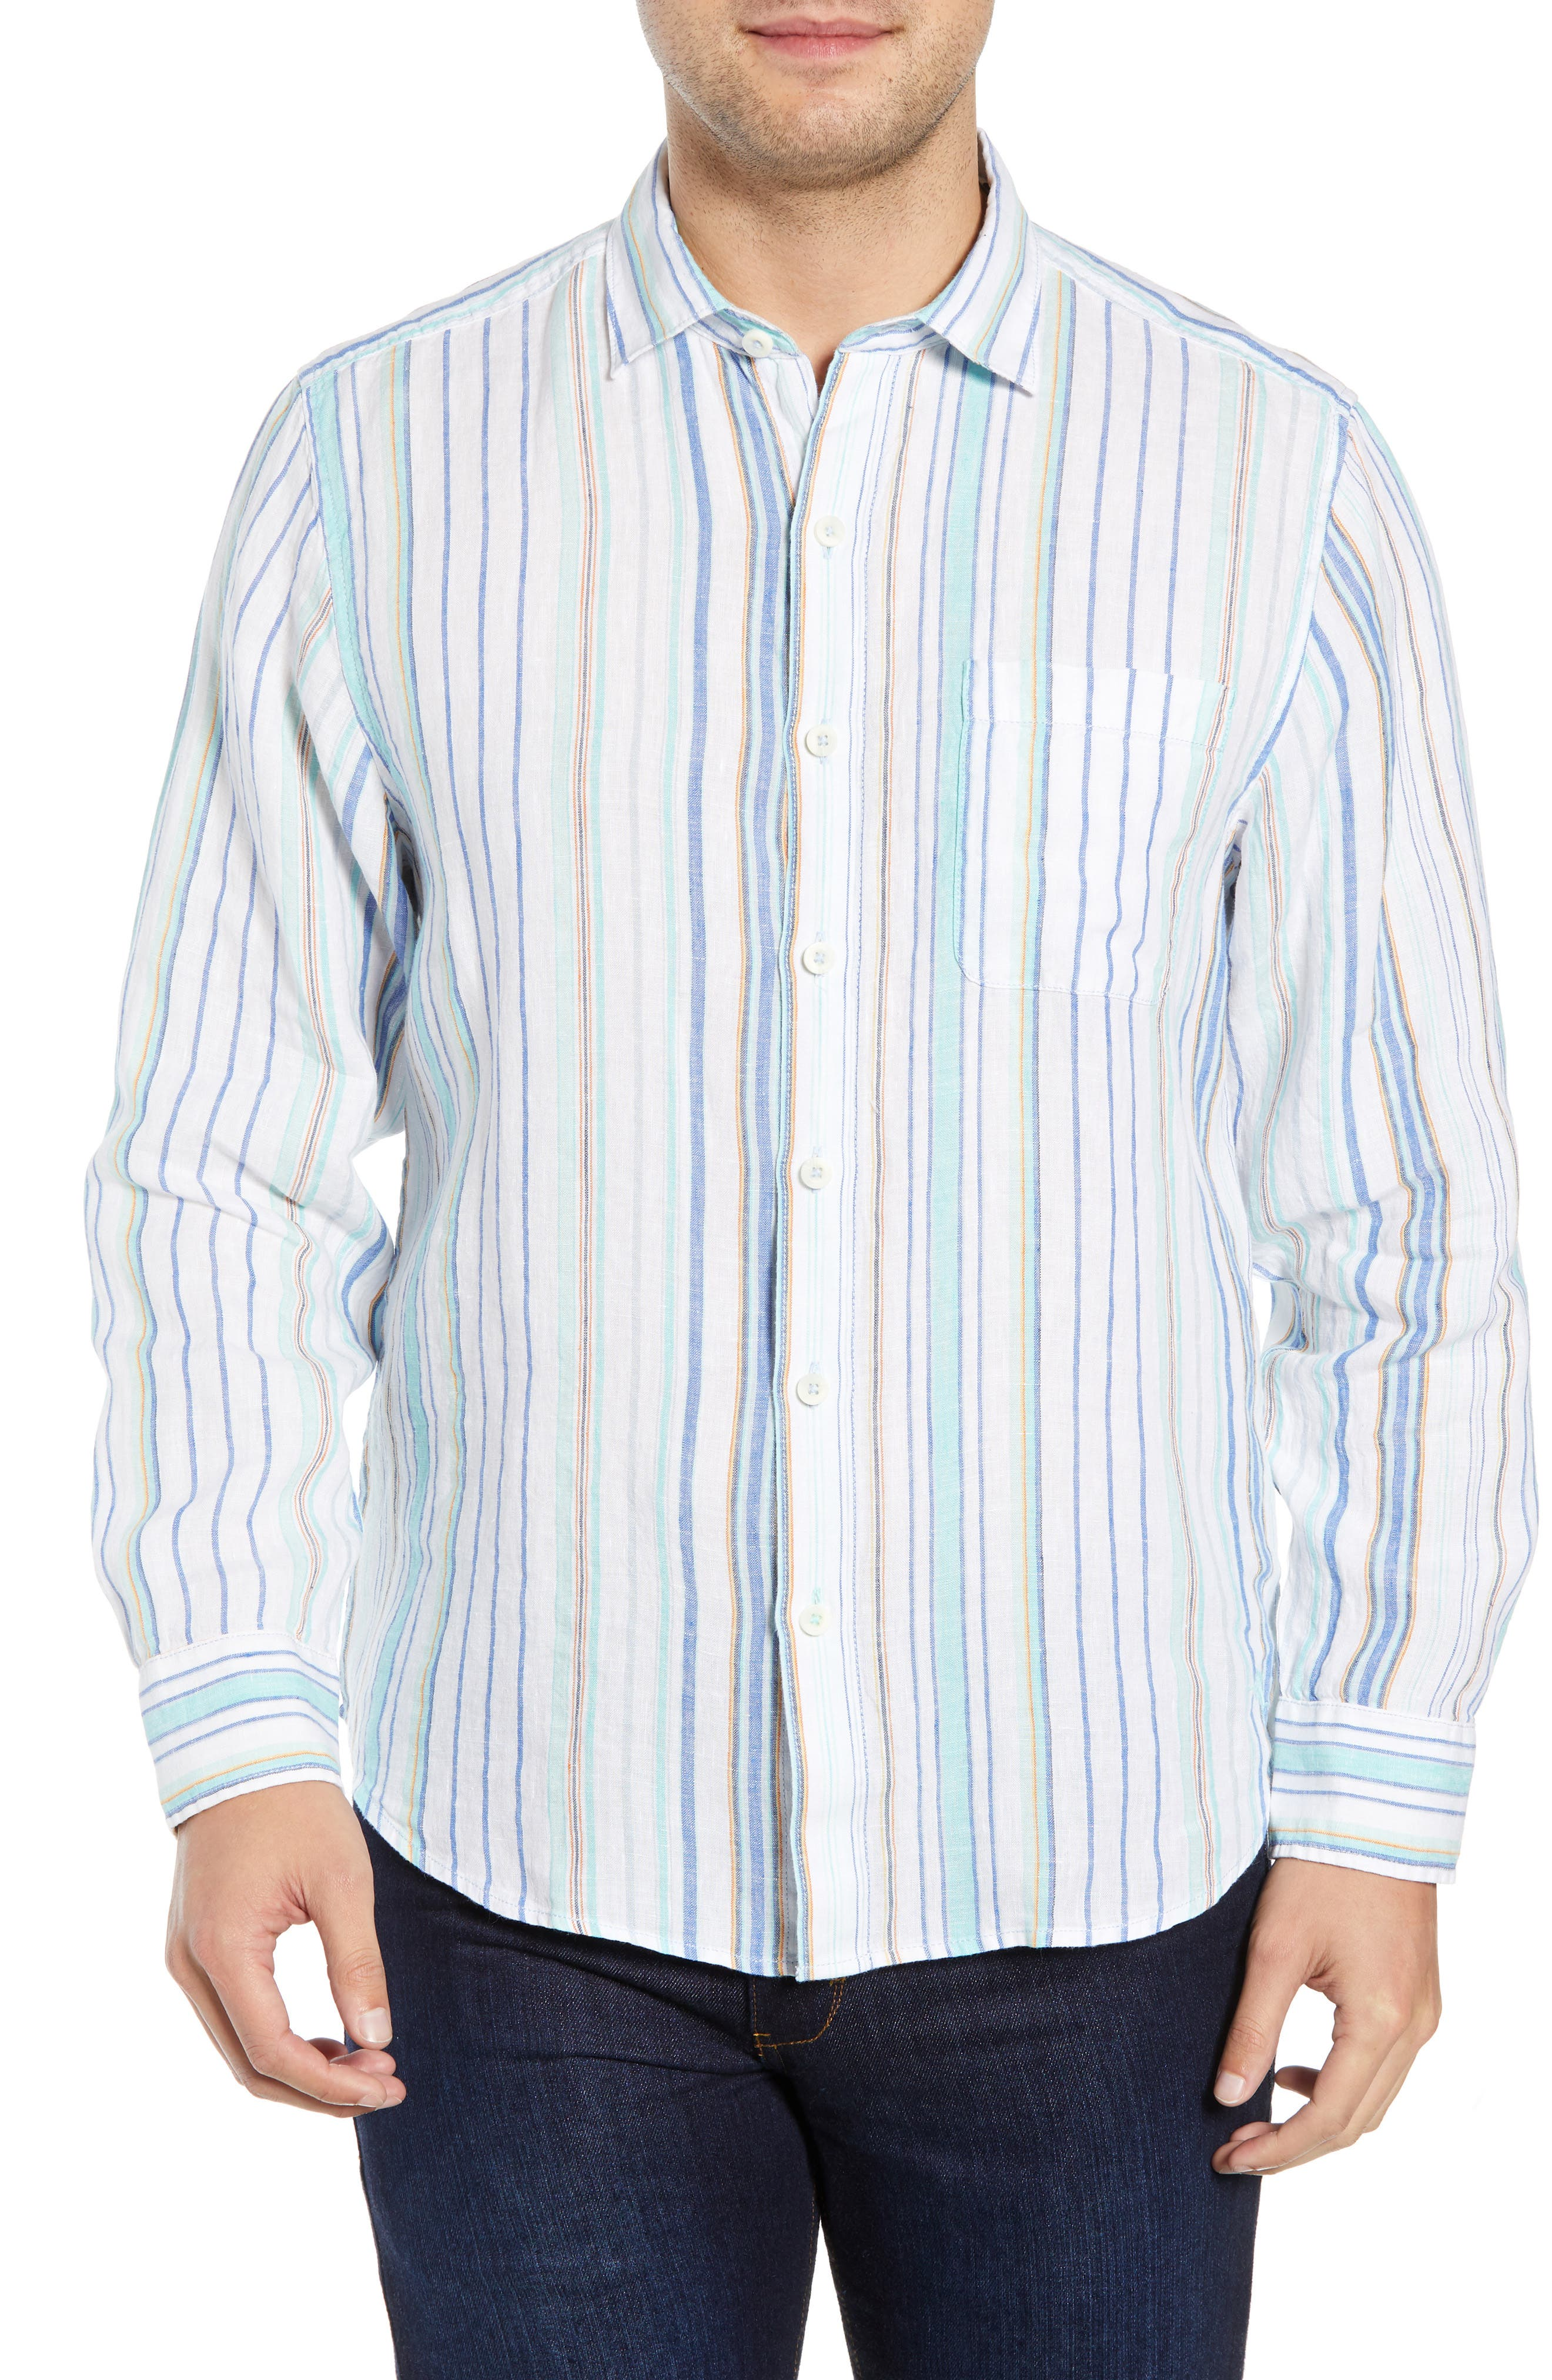 TOMMY BAHAMA Lagoon Stripe Sport Shirt, Main, color, WHITE